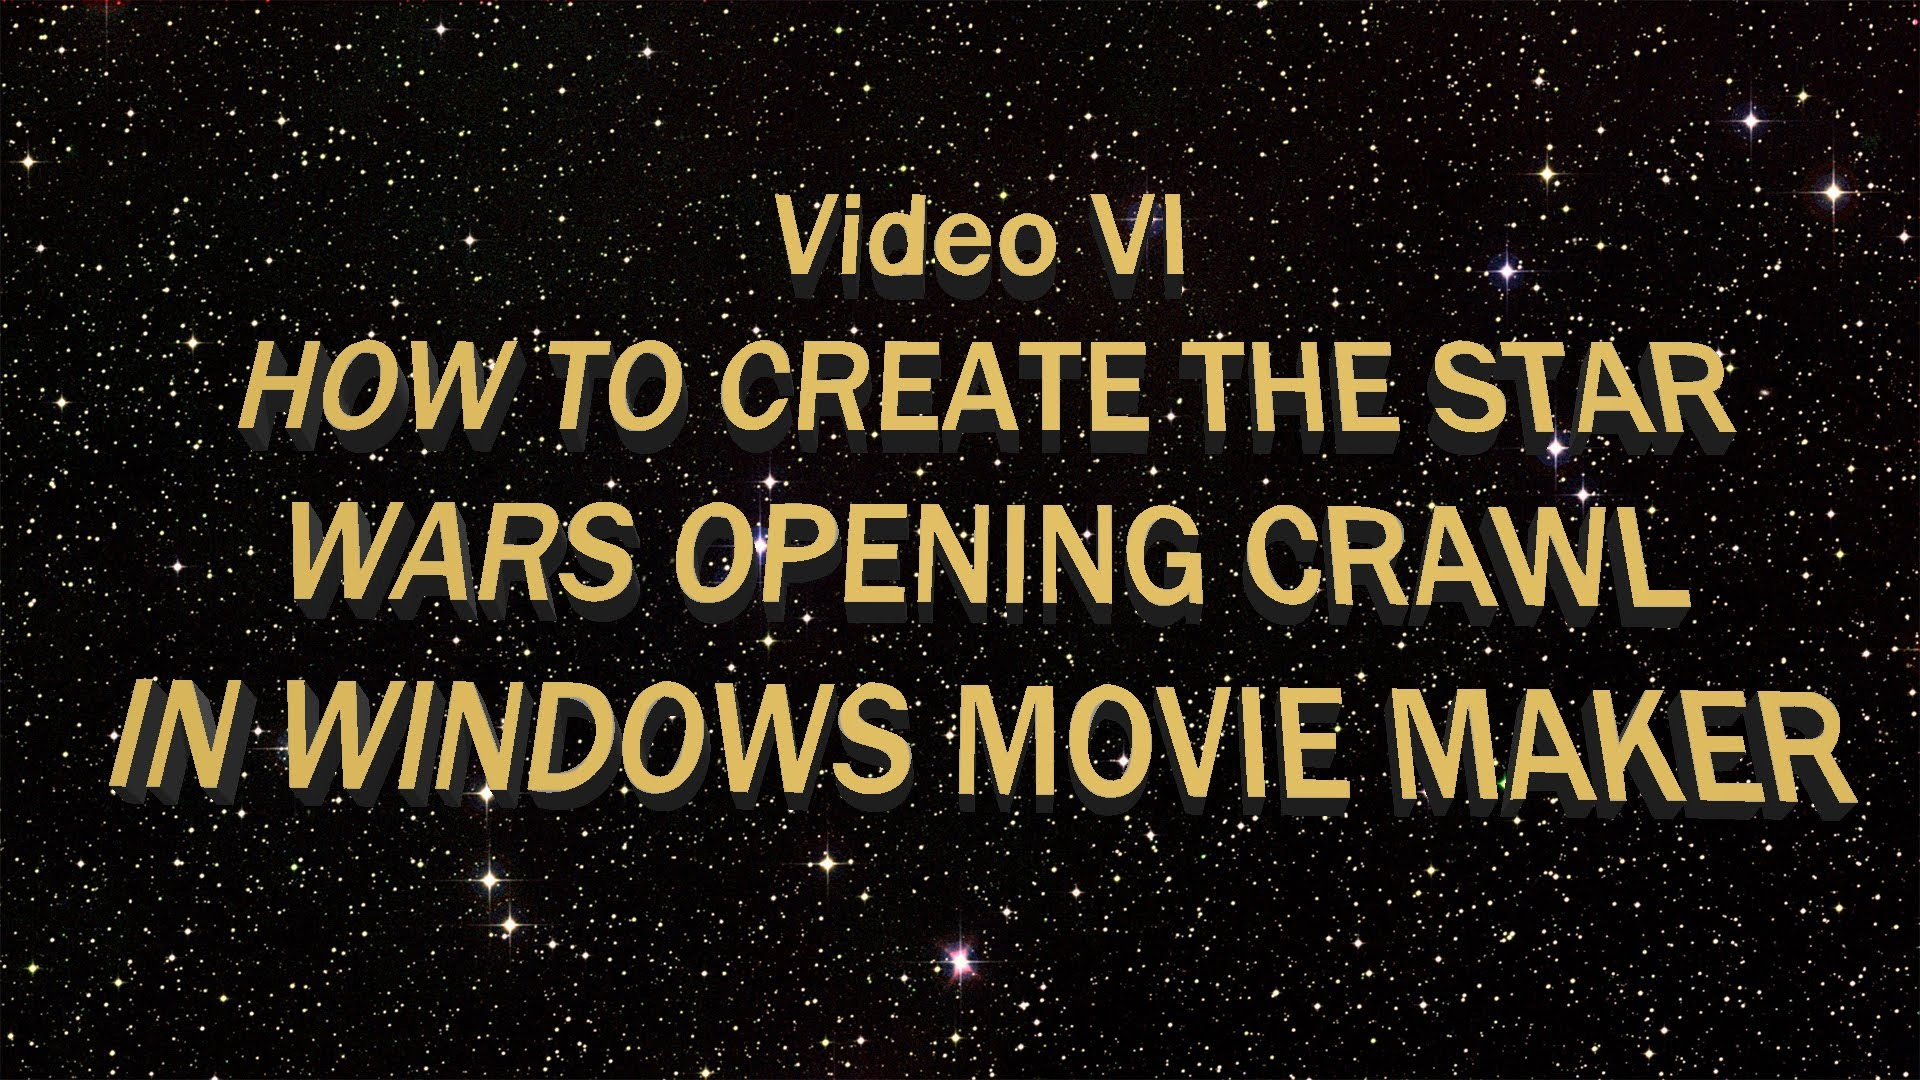 Free Download To Create The Star Wars Opening Crawl In Windows Movie Maker 1920x1080 For Your Desktop Mobile Tablet Explore 42 Text Wallpaper Maker Create Your Own Wallpaper Wallpaper